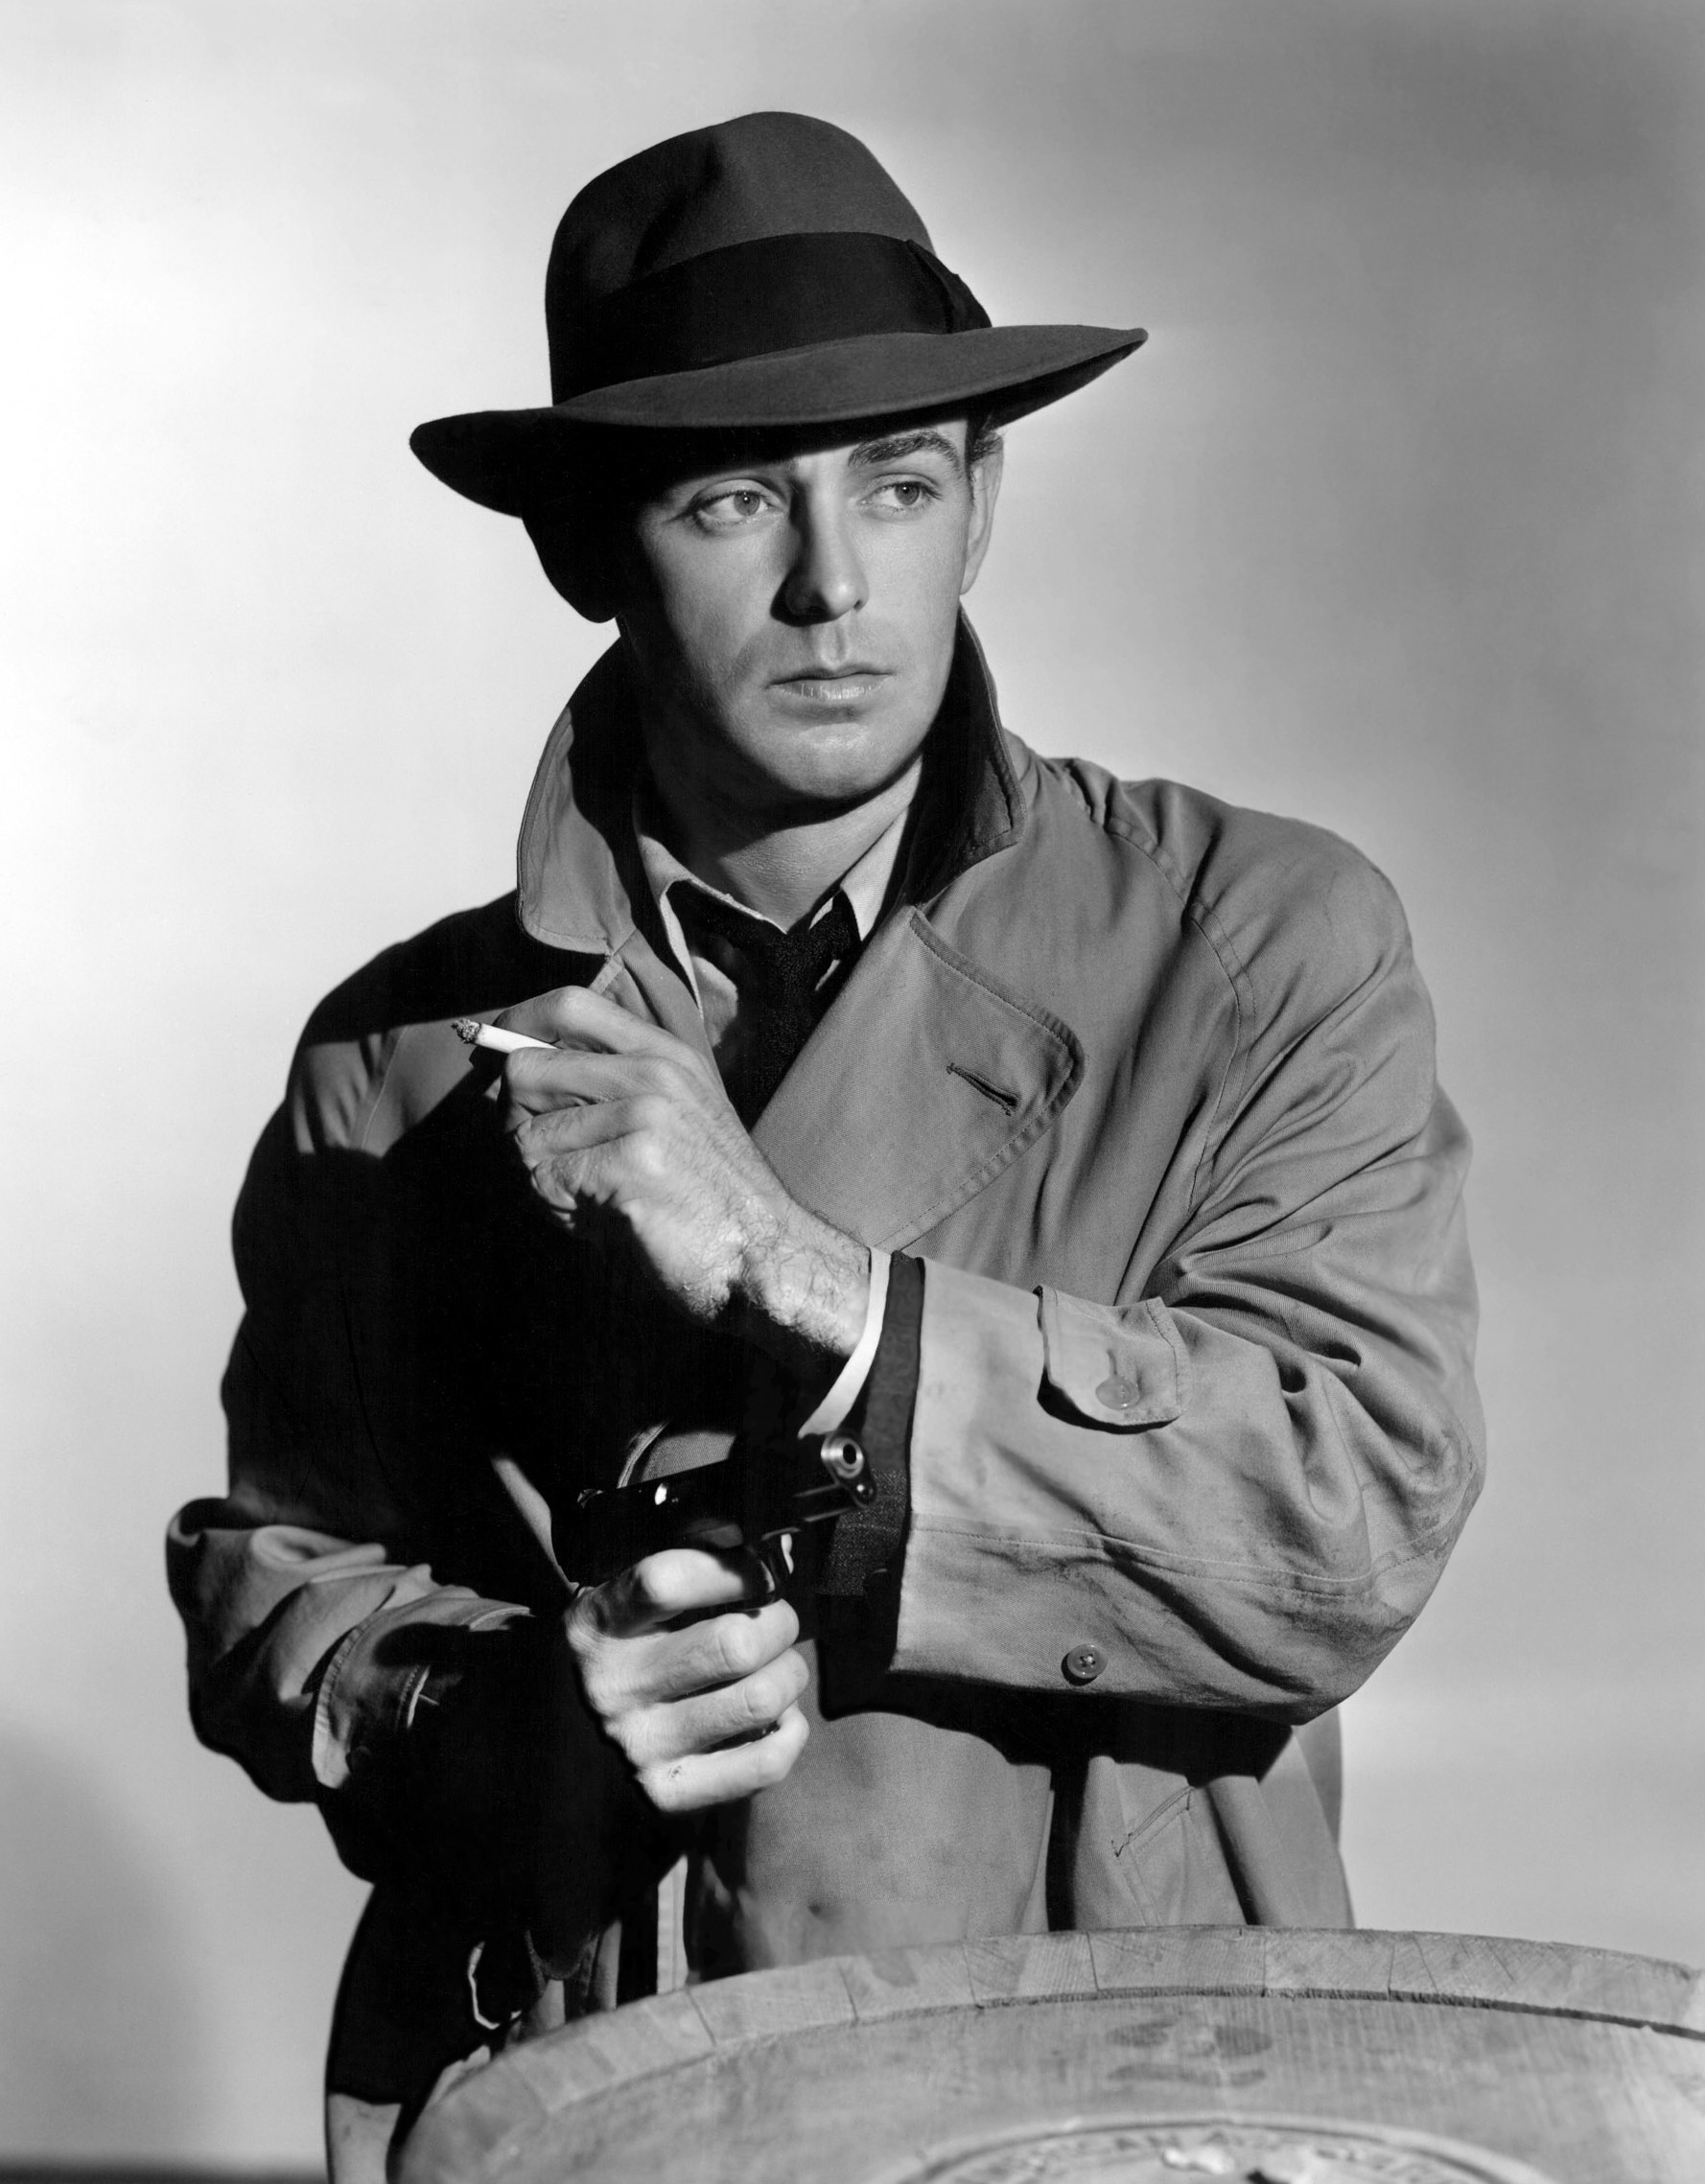 Alan Ladd in This Gun for Hire